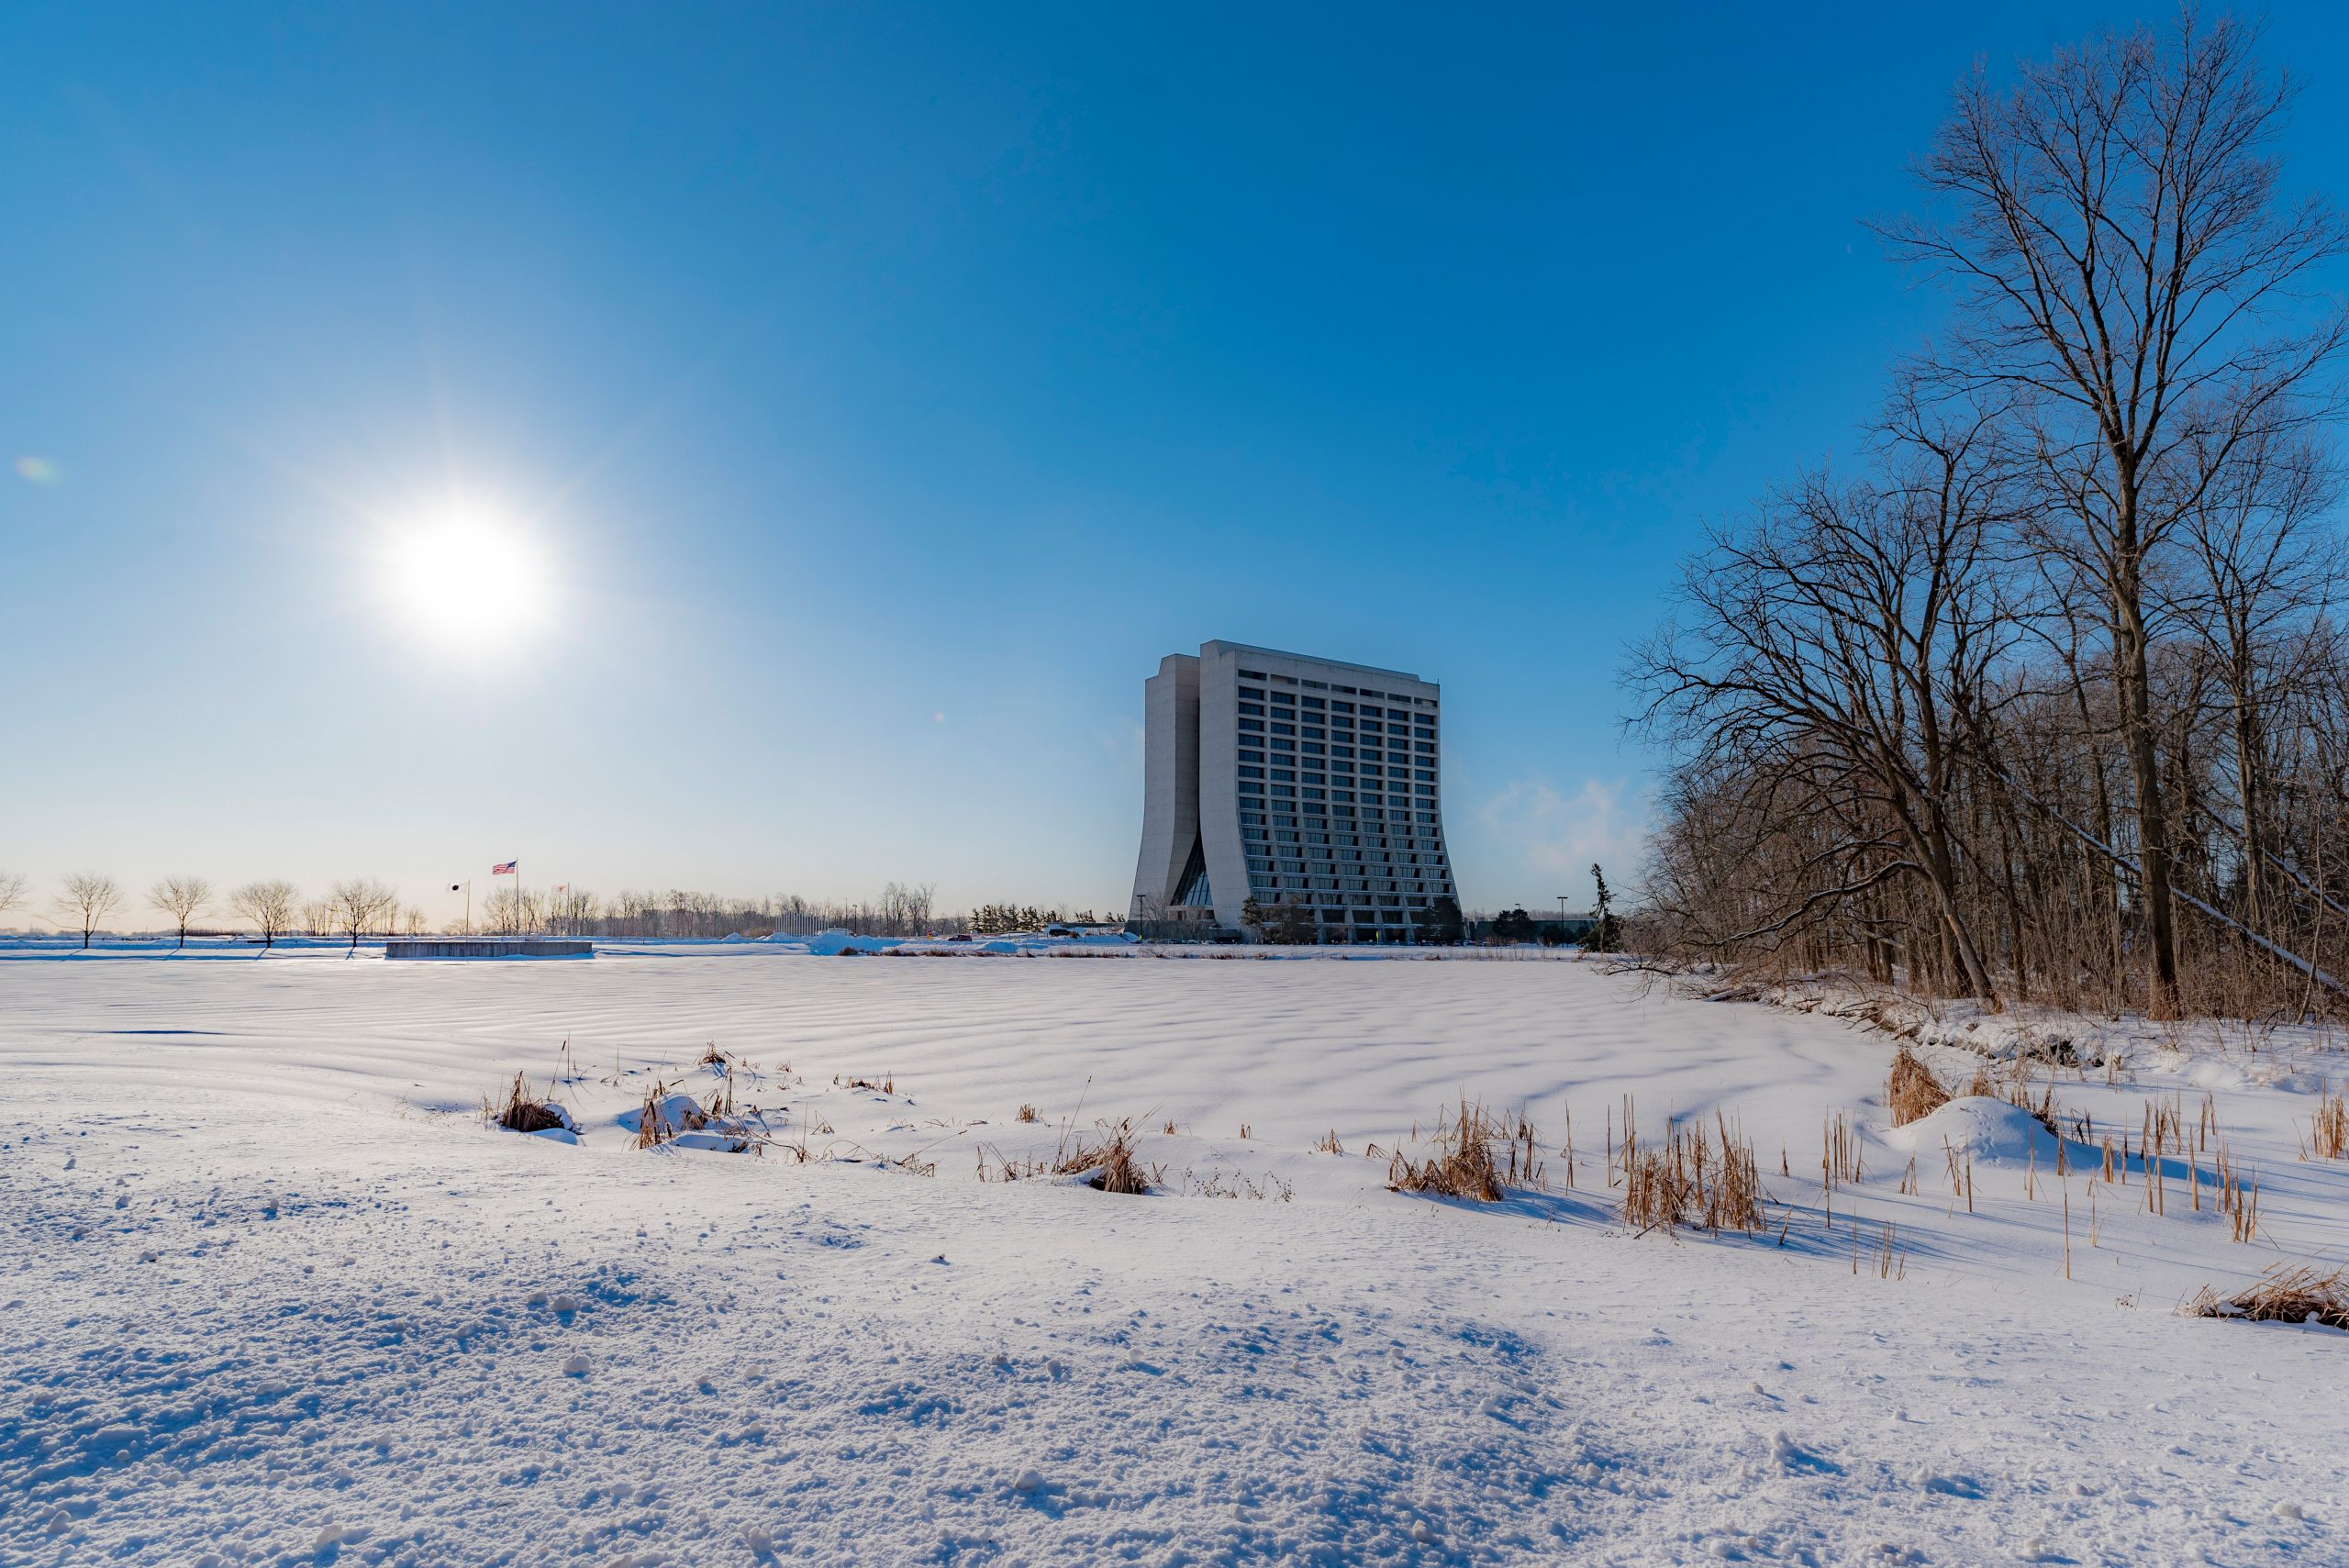 (4/4) ... from any perspective. nature, landscape, winter, snow, building, Wilson Hall, sky, sun, tree, plant, woods Photo: Jan-Frederik Schulte